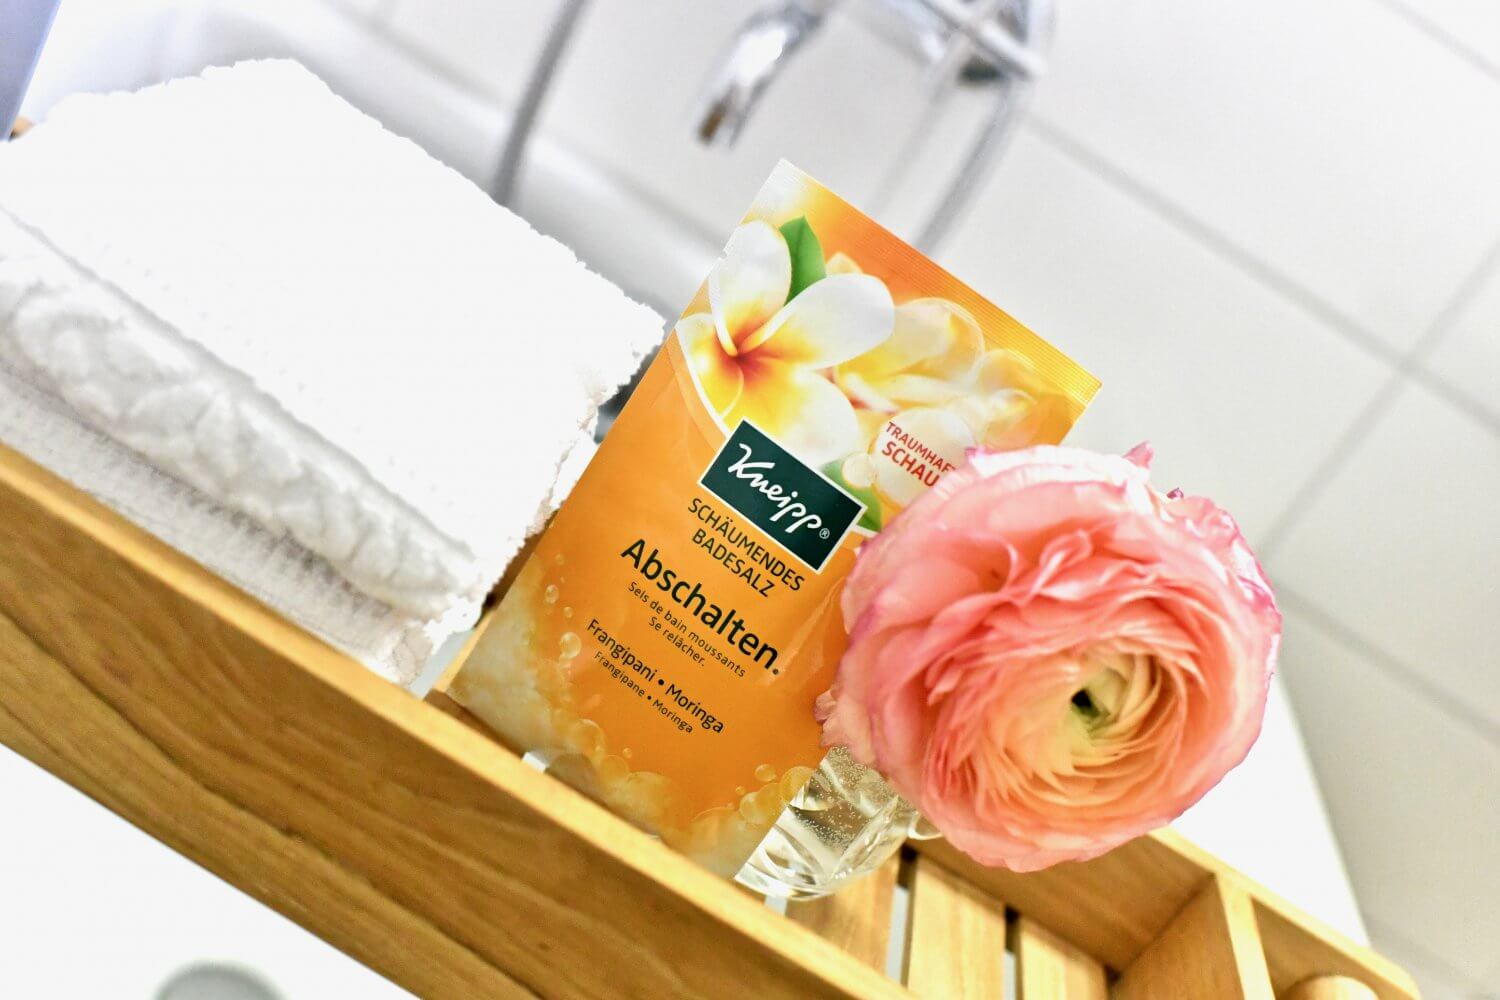 The 250 Million Year Old Secret Behind Kneipp Bath Salts